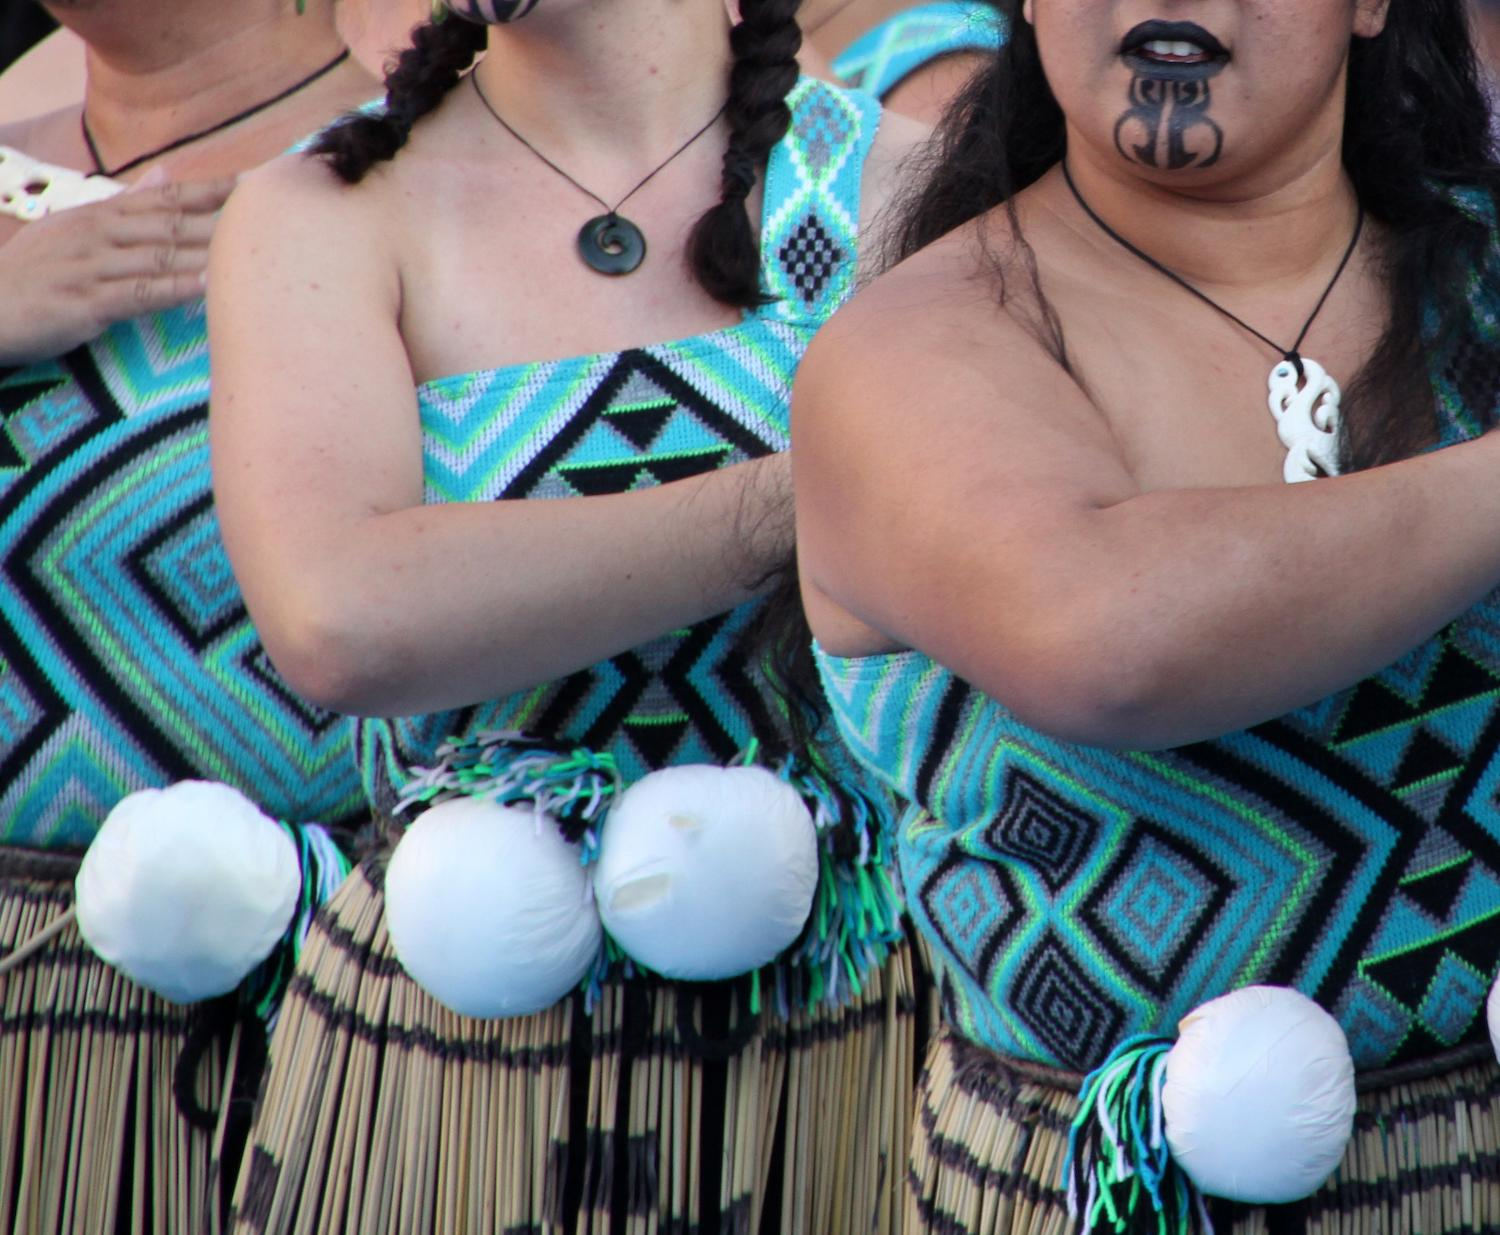 https://rfacdn.nz/conventions/assets/media/maori-cultrual-experiences-mihi-whakatau-auckland-conventions-venues-and-events.jpg